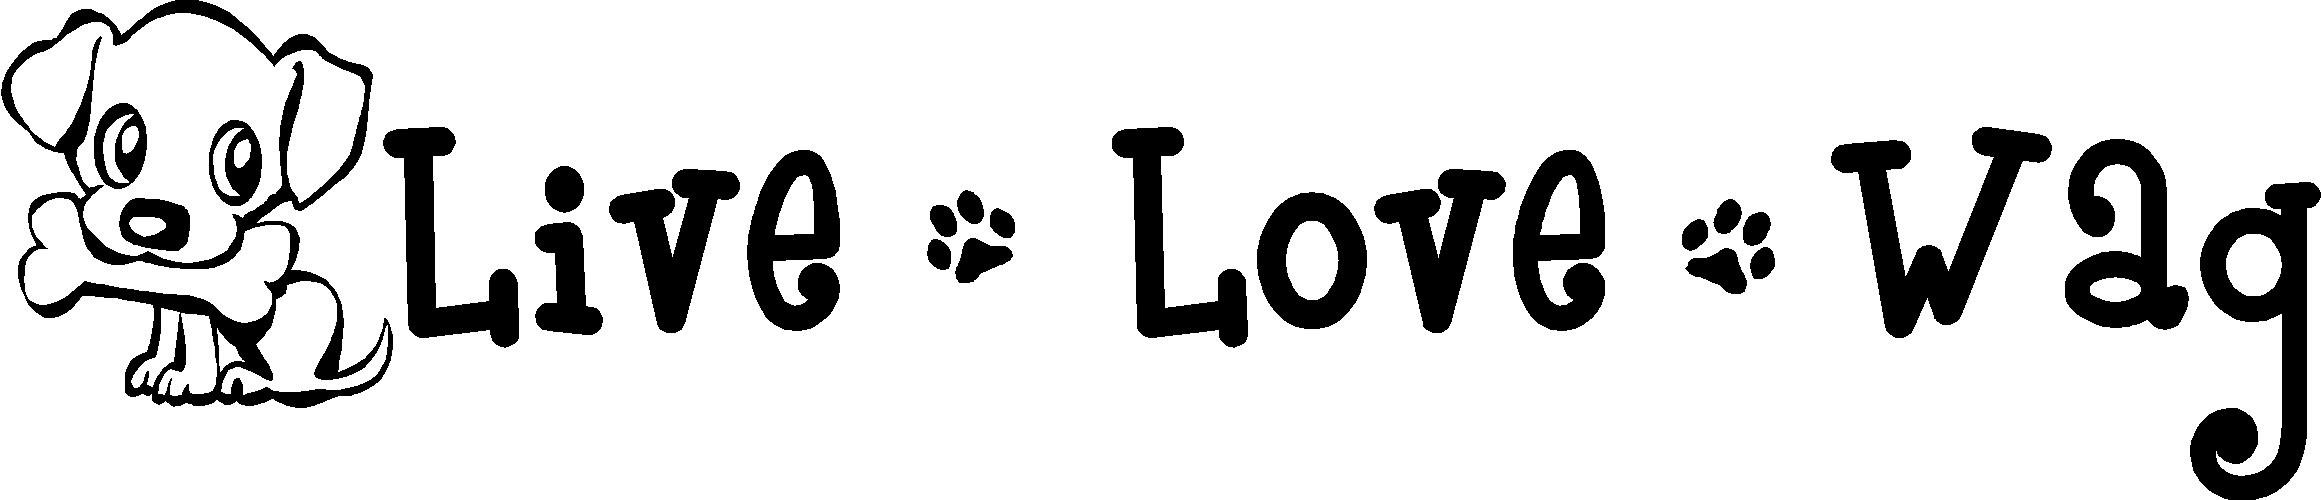 2 Live Love Wag Cute Puppy Wall Art Sayings Quotes Paw Prints